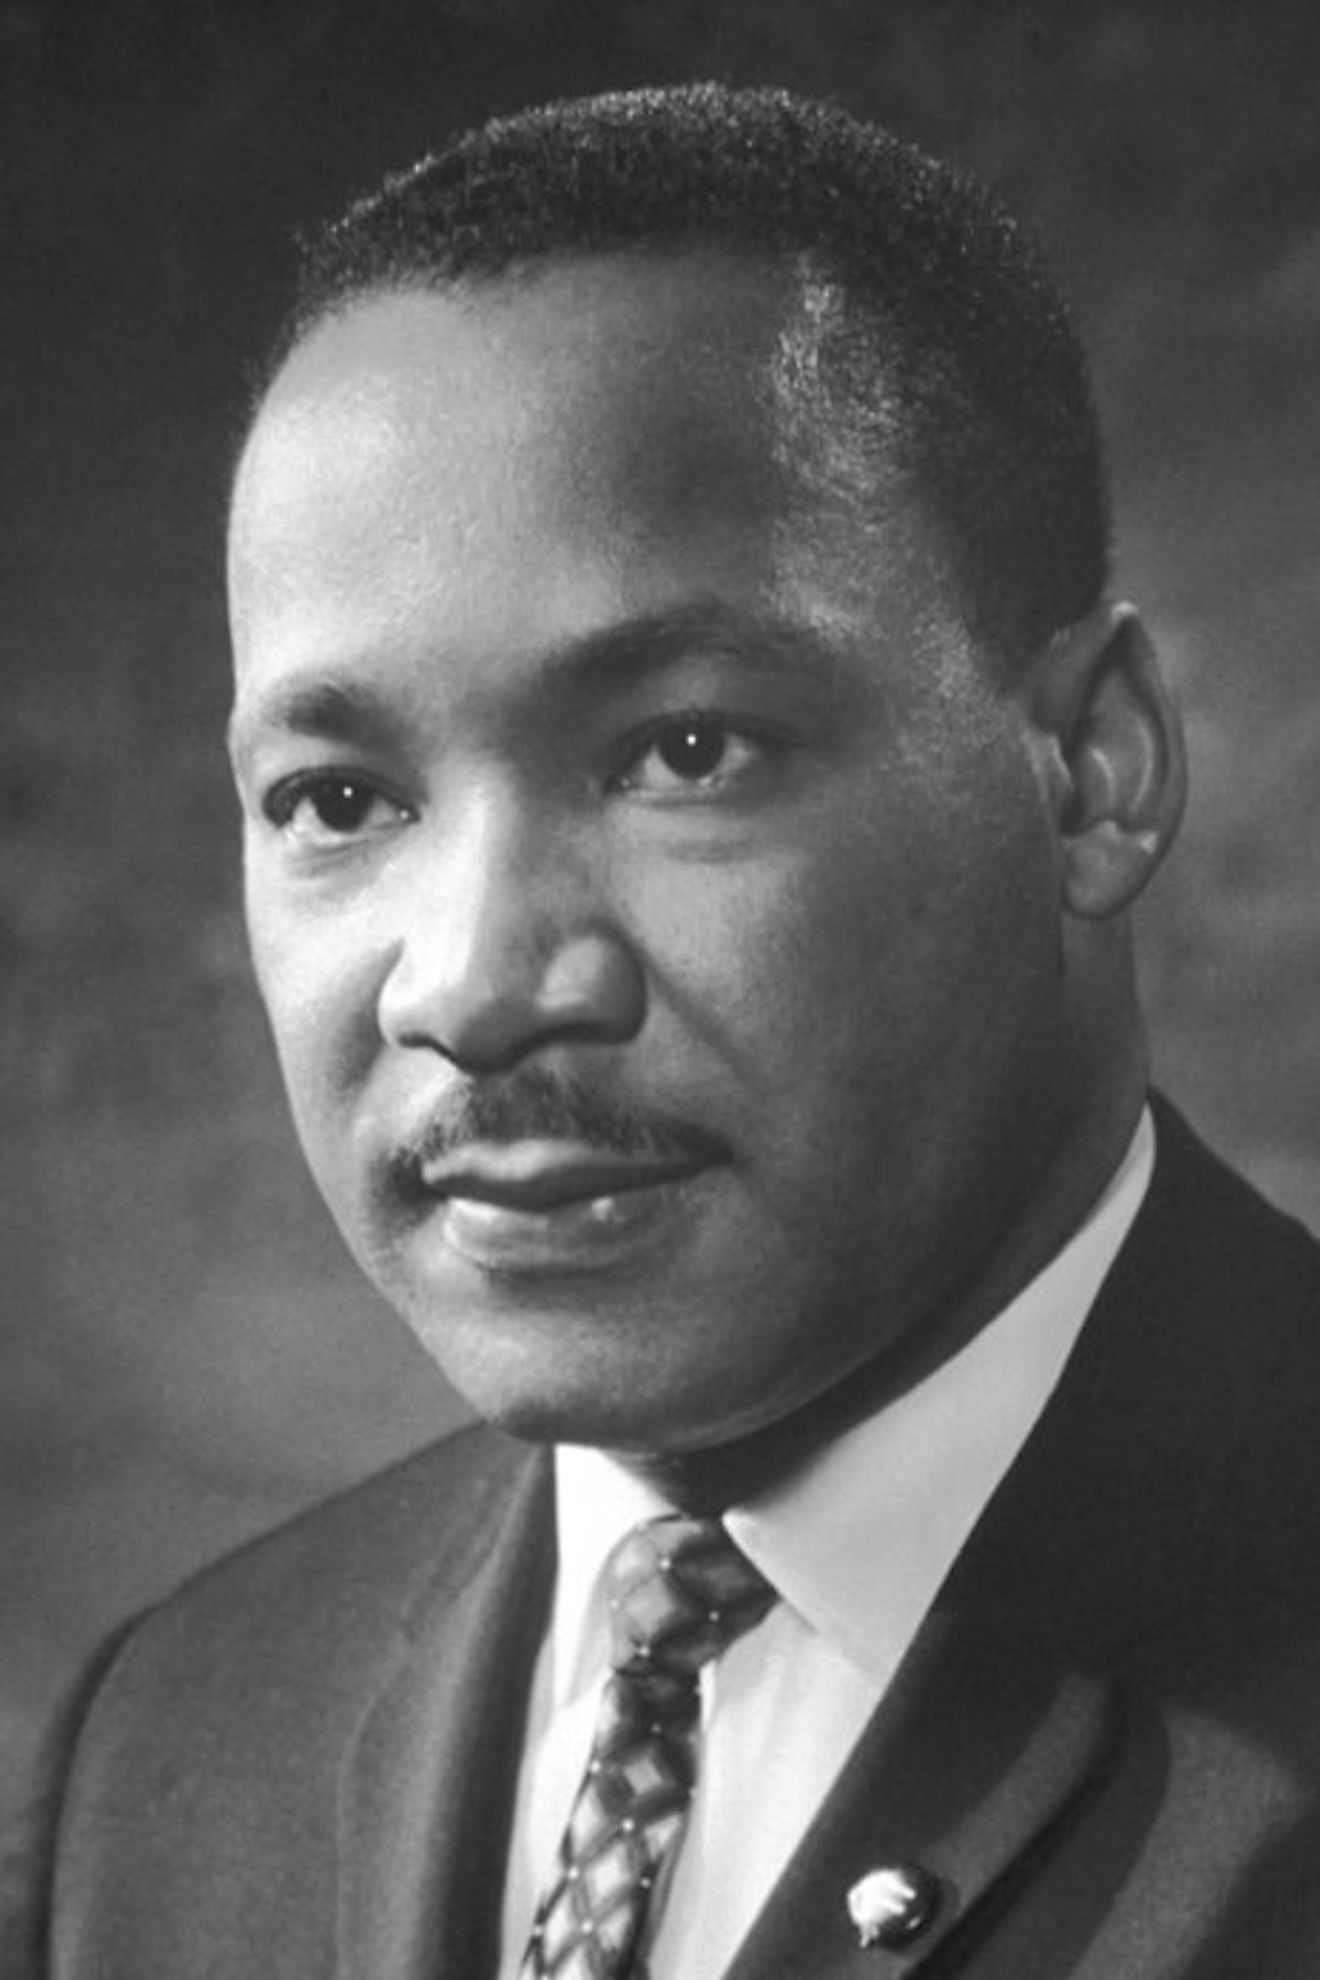 Martin Luther King Jr. Image credit: Nobel Foundation/Public domain